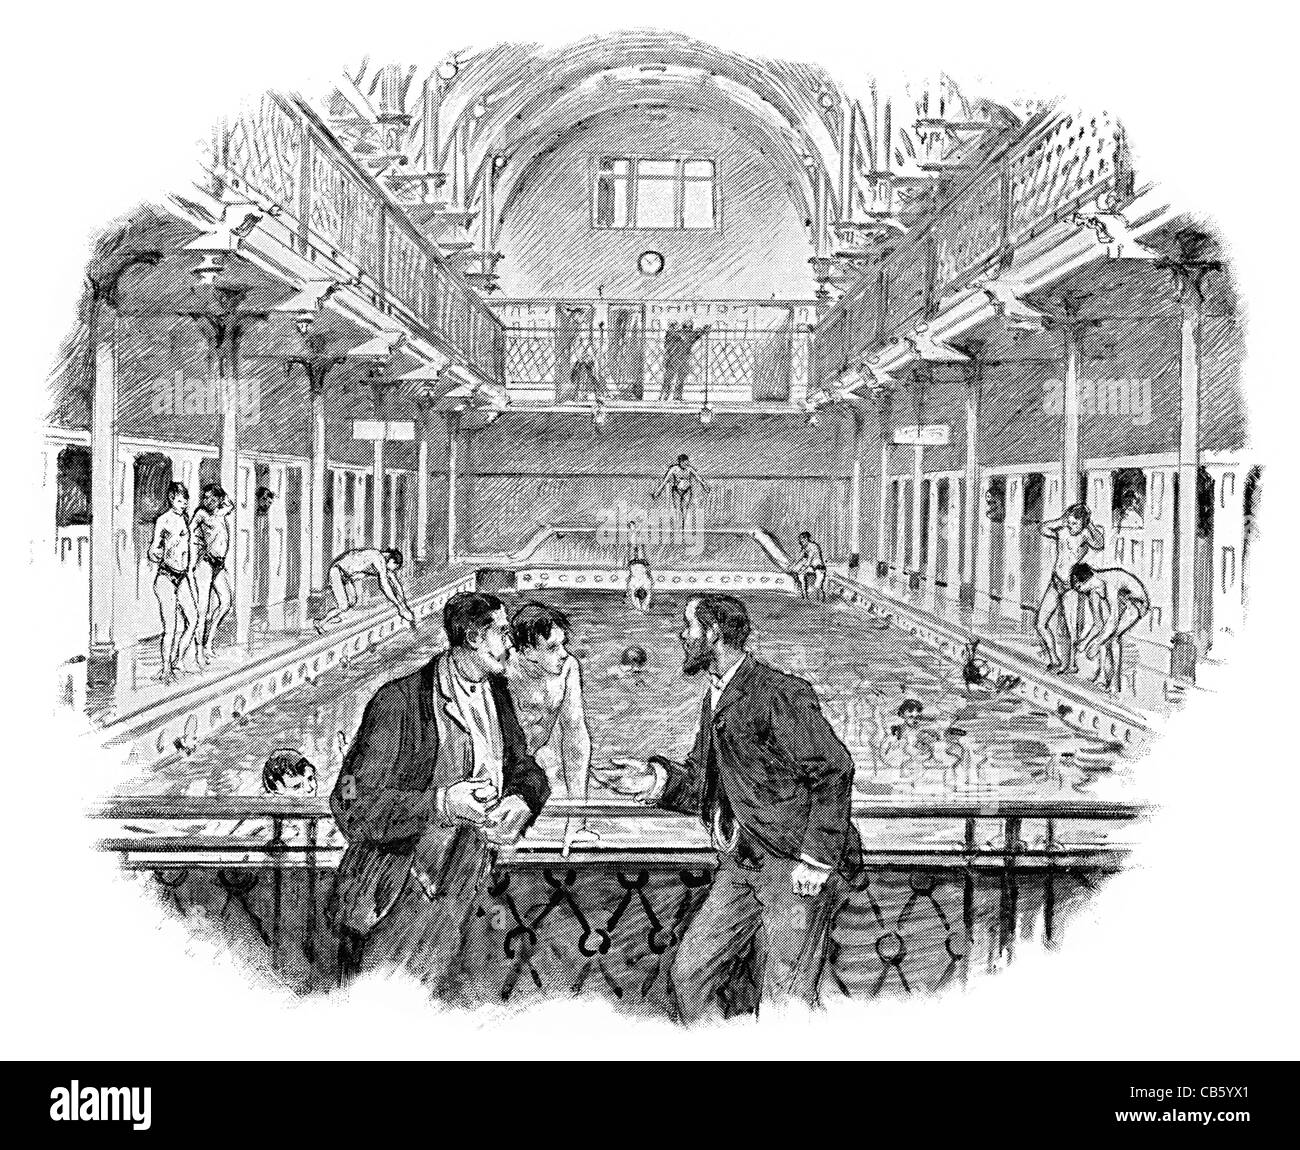 Leaf street Baths swimming pool swimmer bathing diving board paddling trunks swim changing rooms room bath - Stock Image